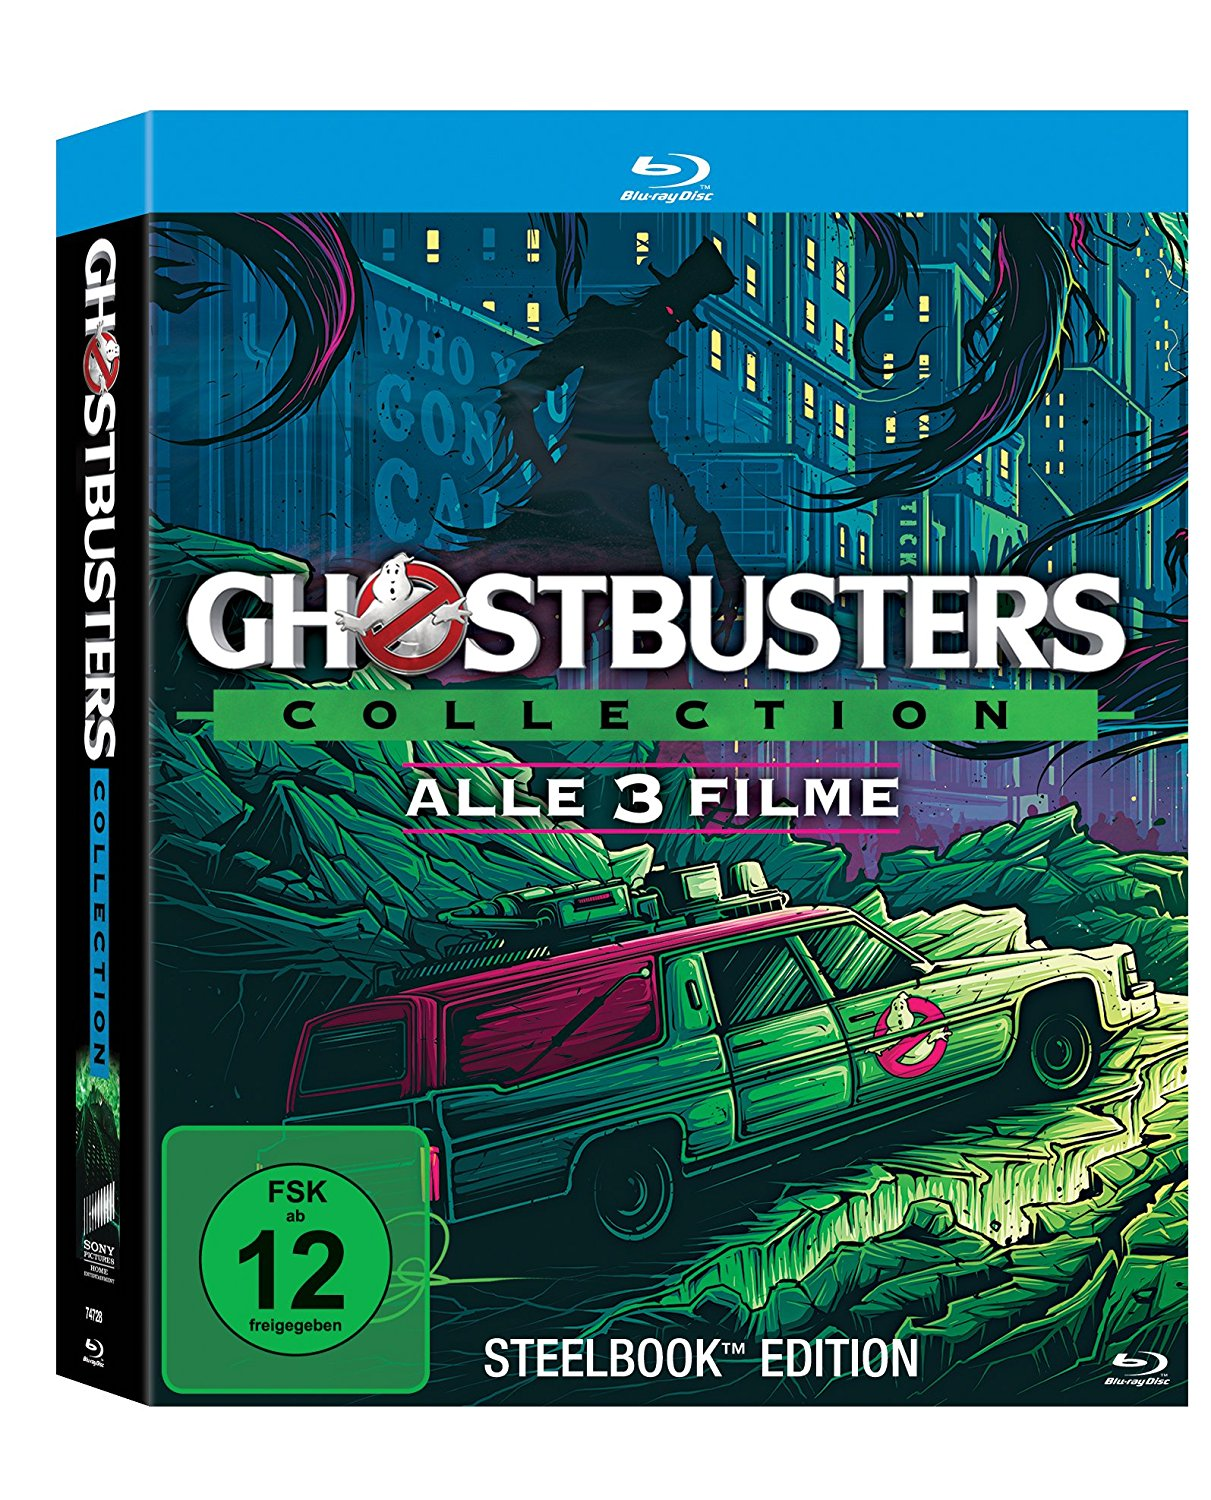 ghostbusters-collection-steelbook-1